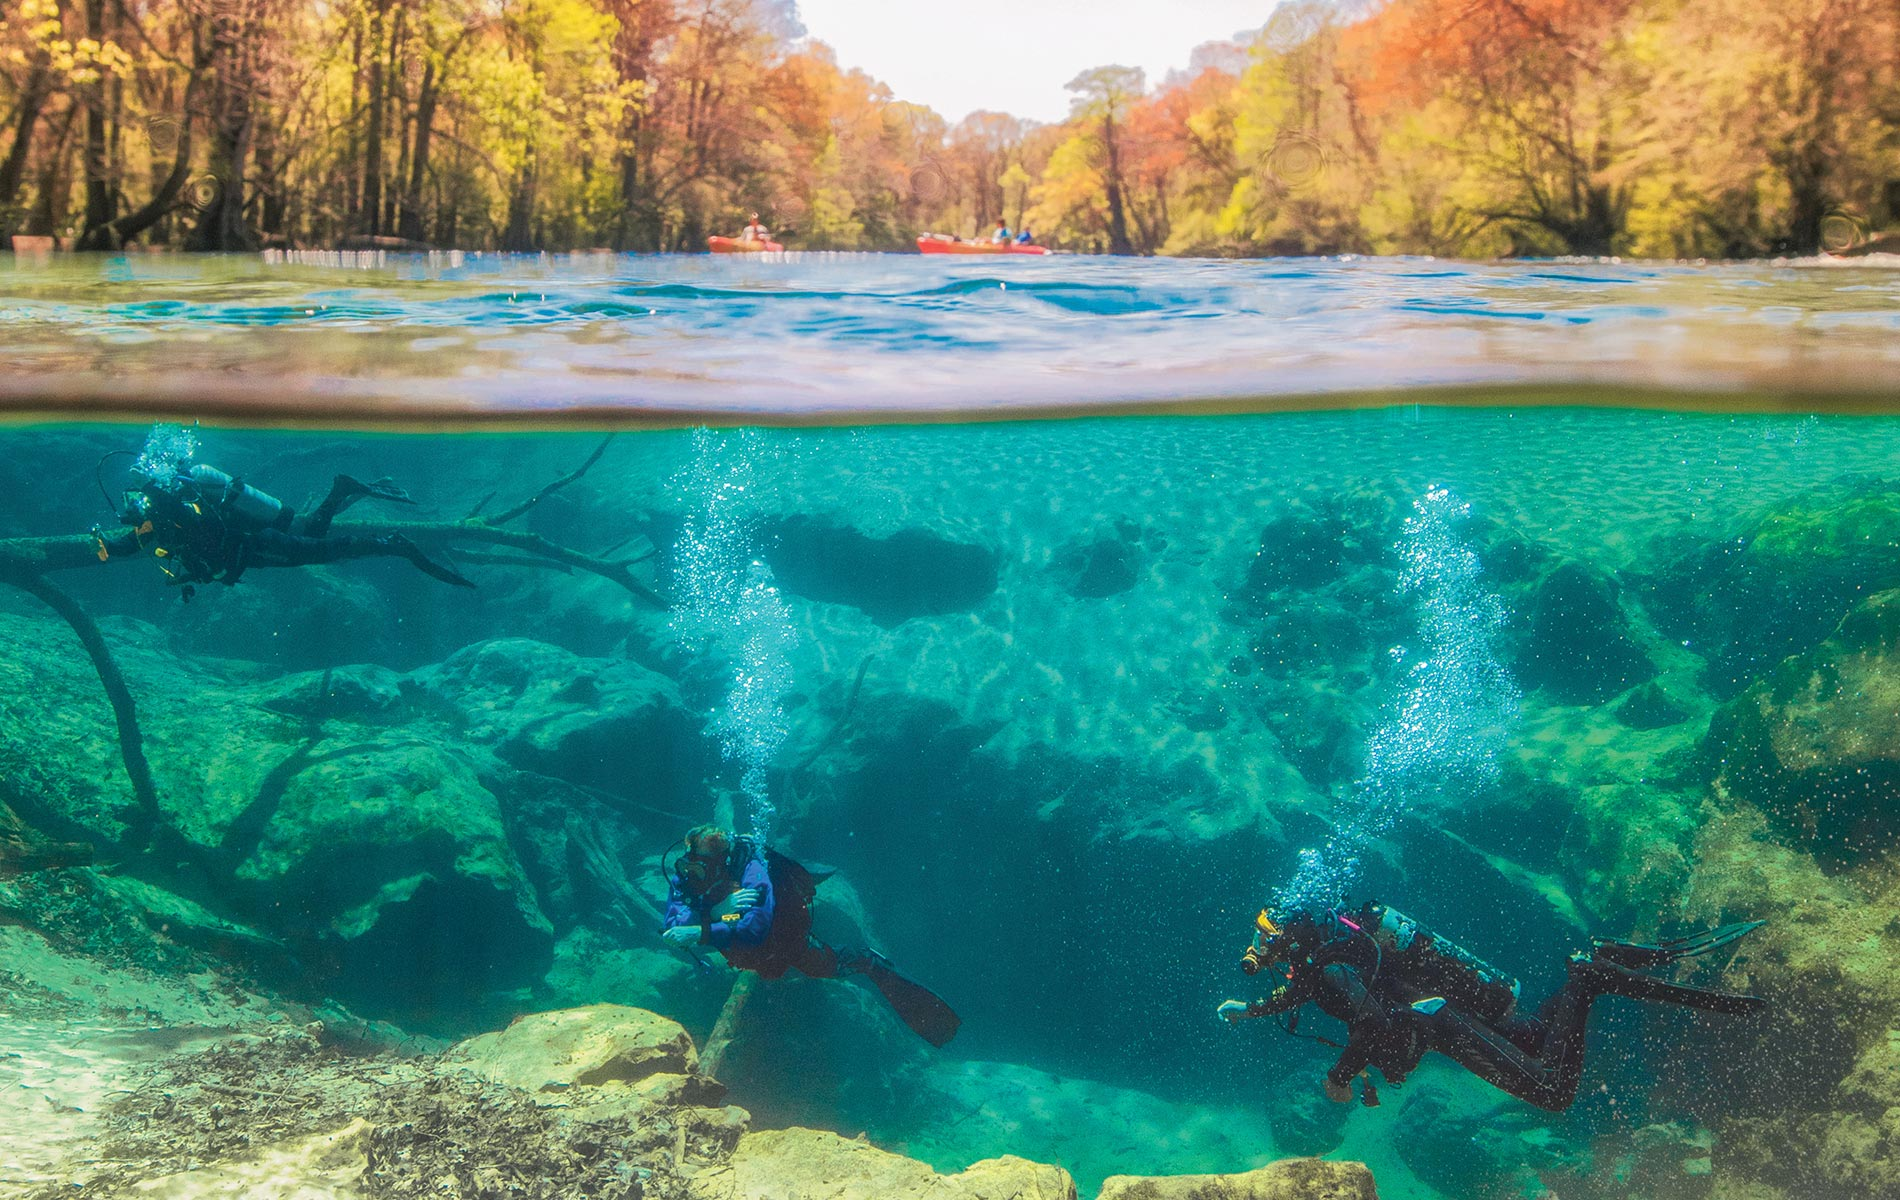 John Hott, Torrey Blackmon, and Laython Blackmon dive Cypress Springs while kayakers explore the surface.